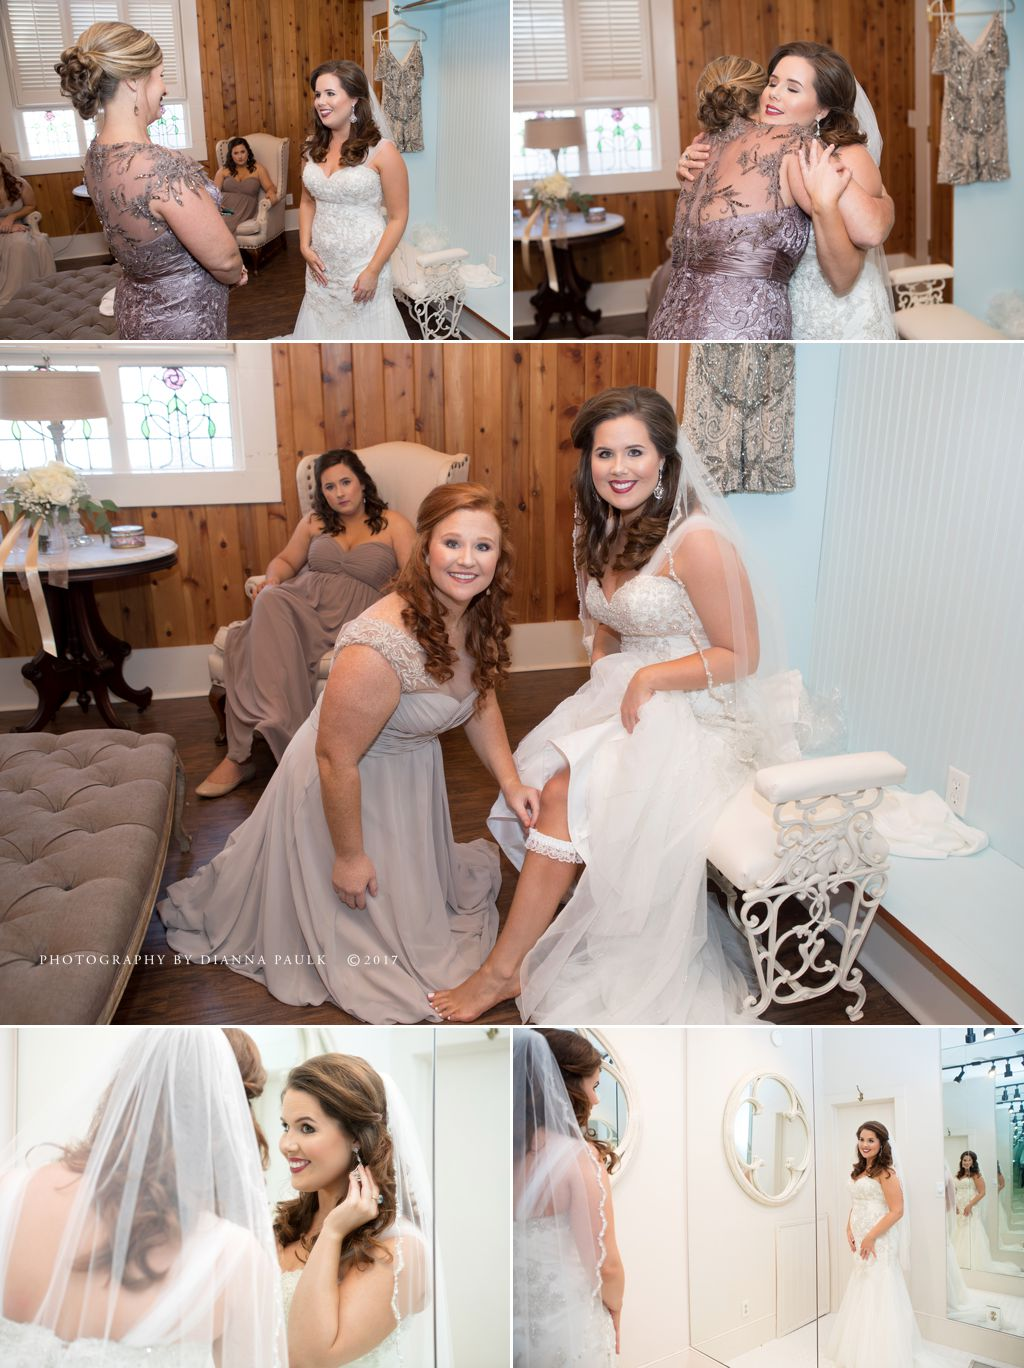 Wedding preparation at The Emporium in Troy AL; Photography by DiAnna Paulk, a certified professional photographer in Montgomery AL